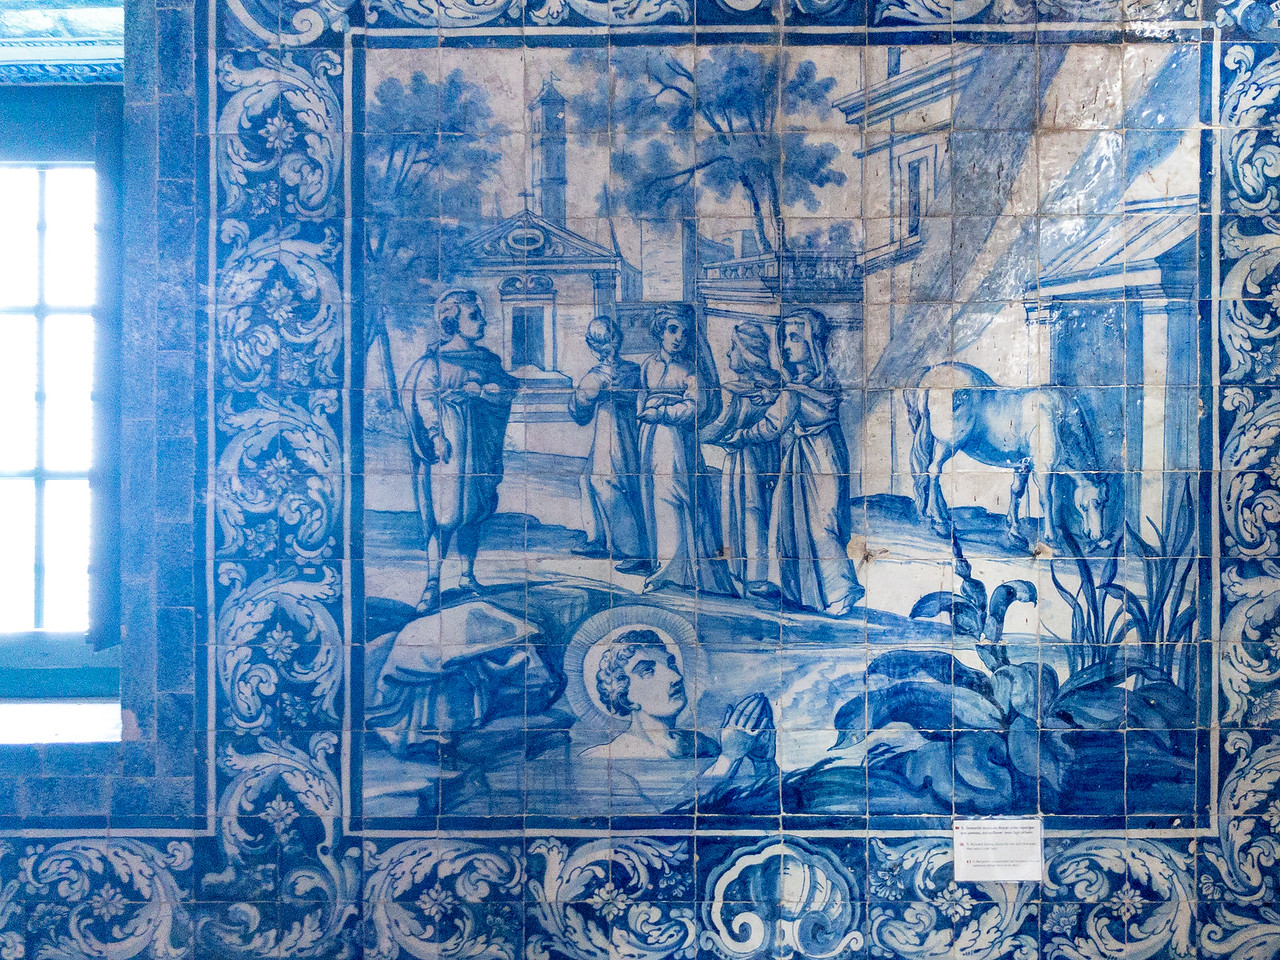 Closeup of an Azulejo Tile Showing What You Should Do If Tempted By Devilish Urges